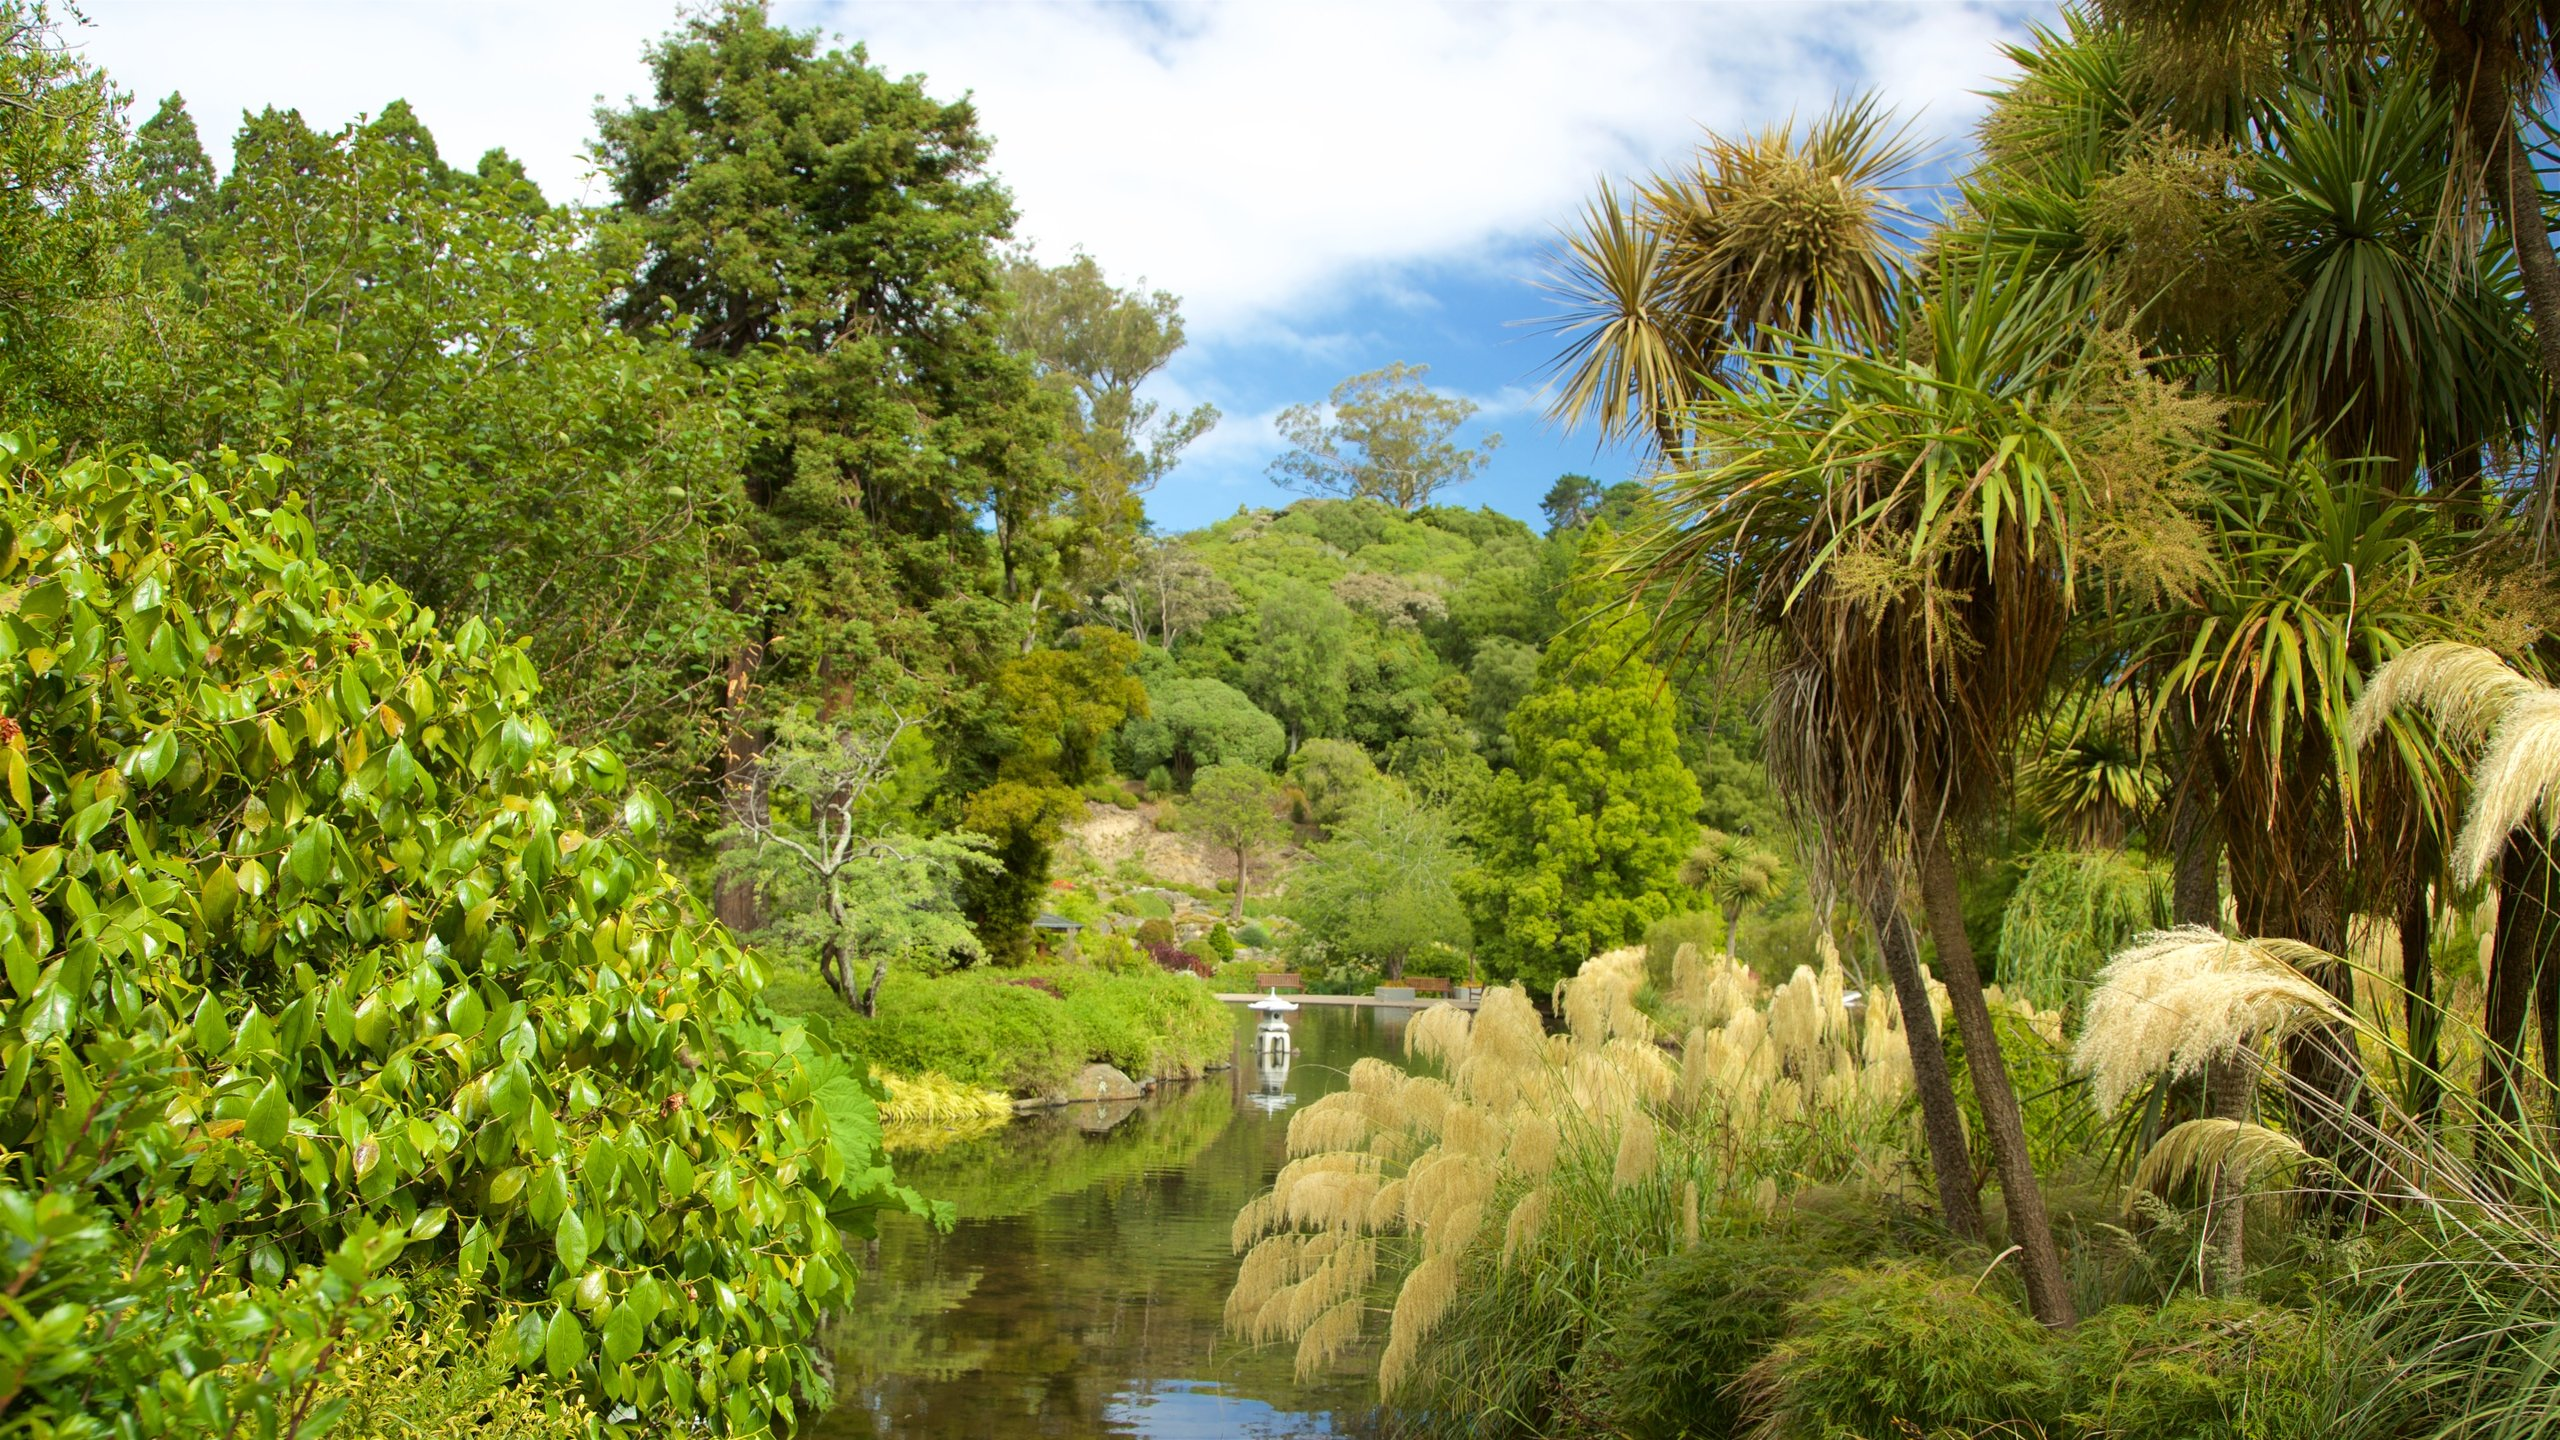 Spot native birdlife, admire thousands of colourful plant species and enjoy picnics on lush green lawns at this pretty public garden.